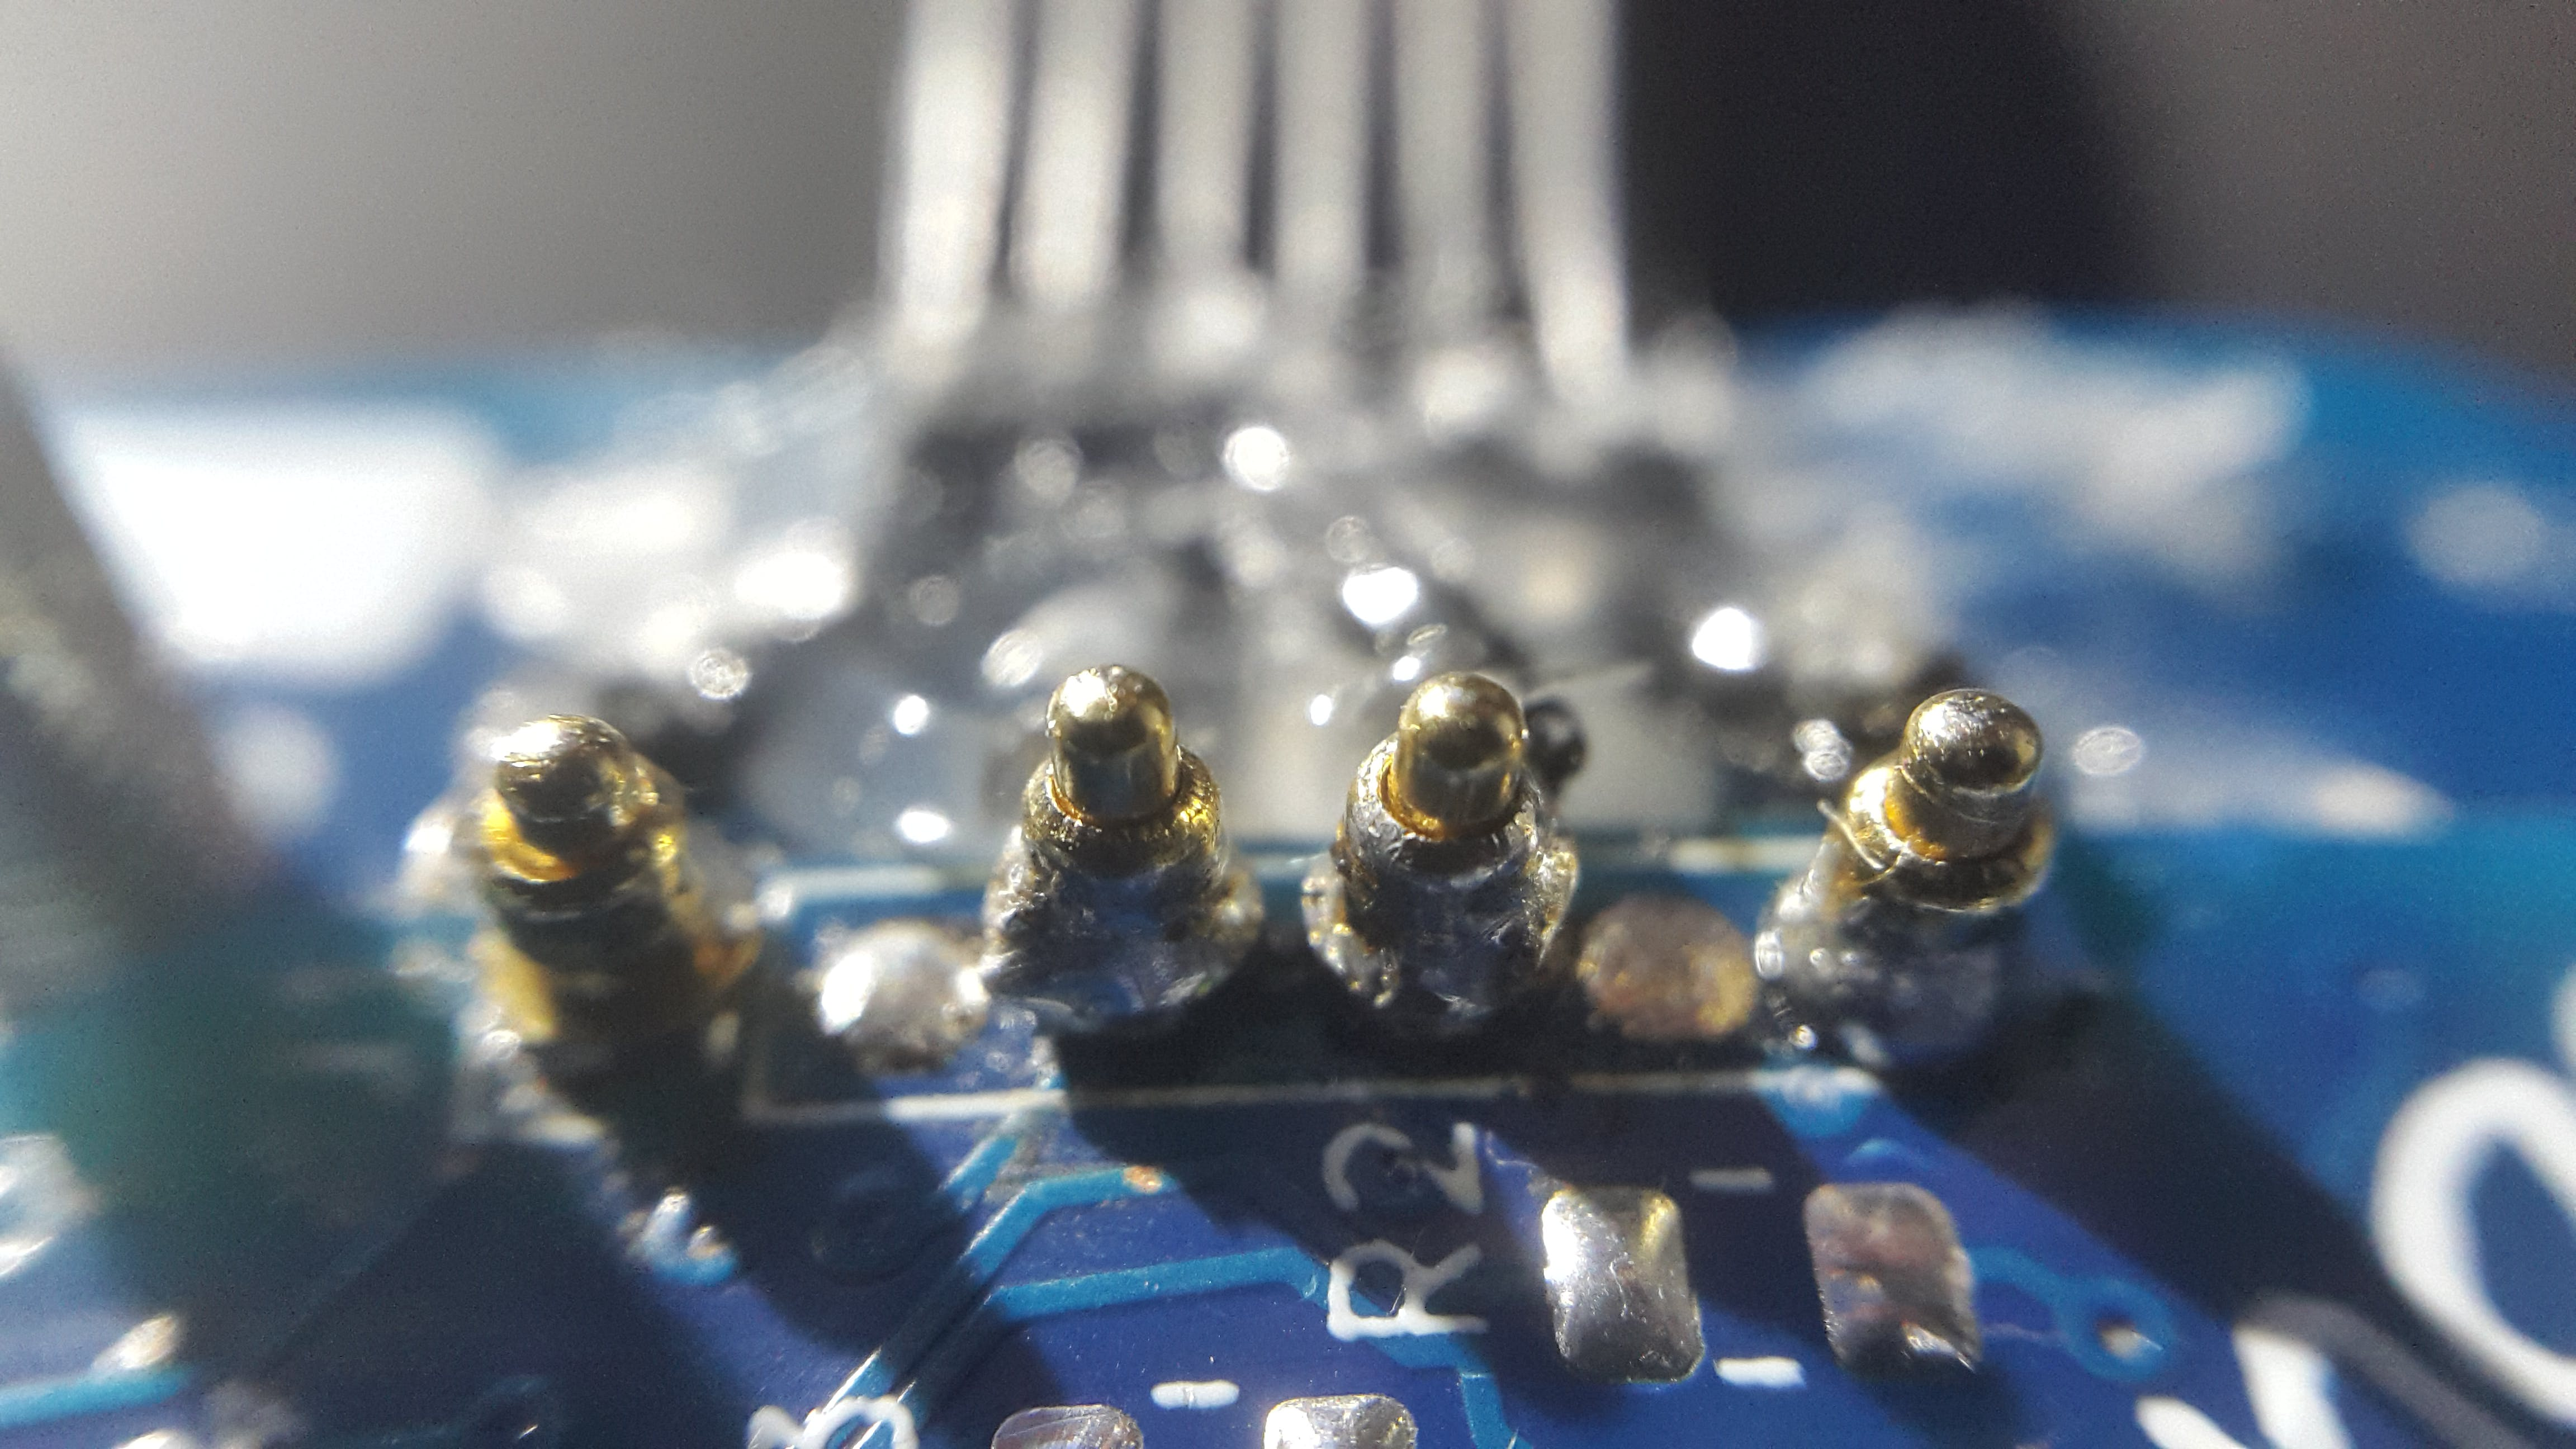 spring loaded contact pins